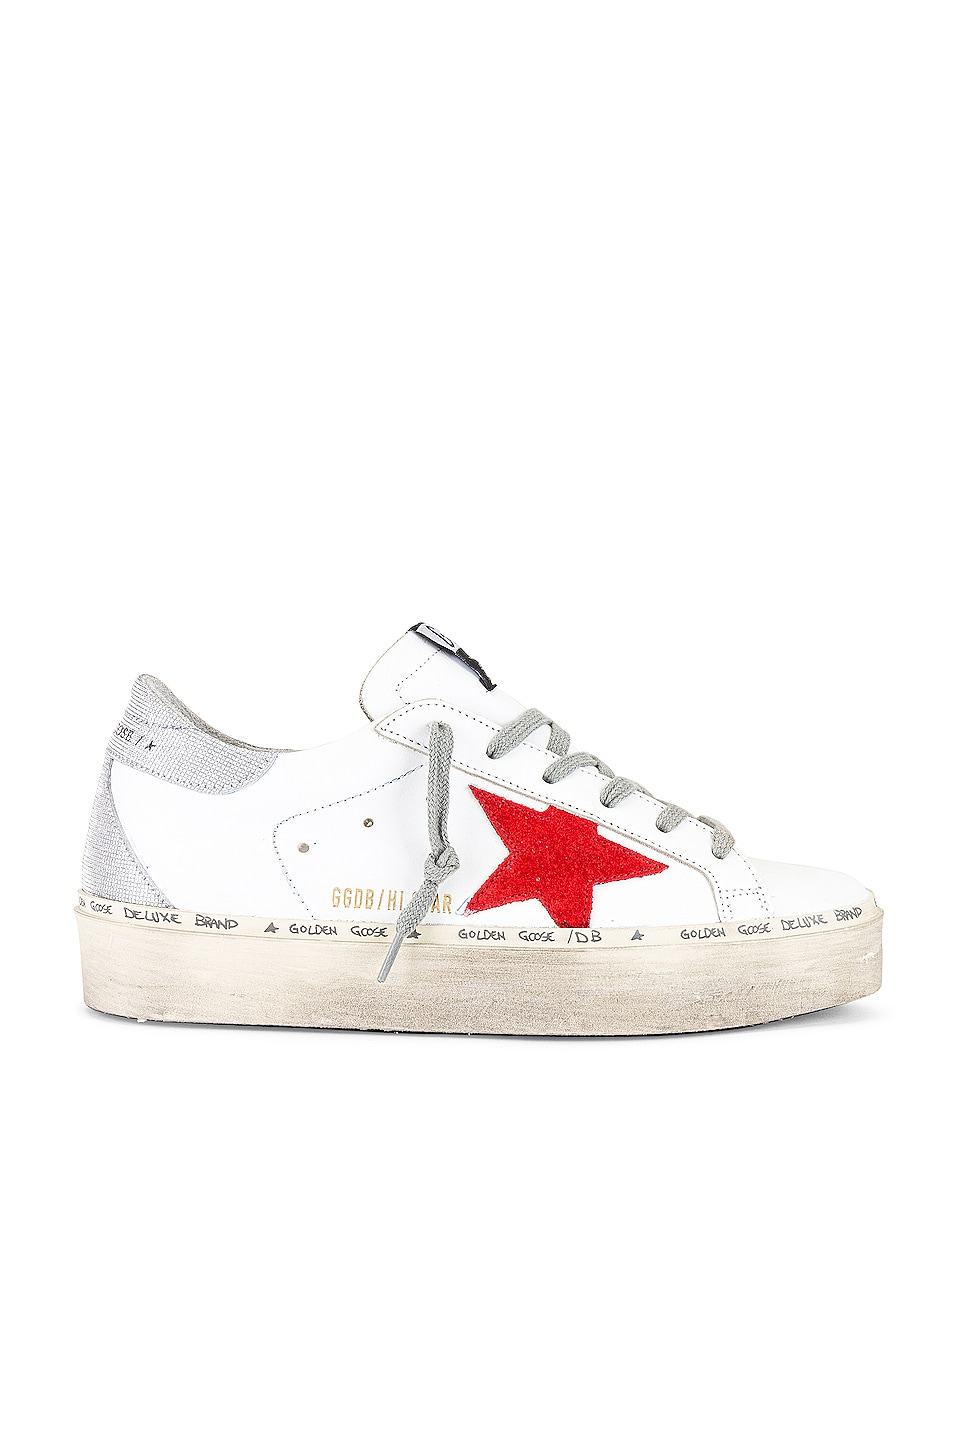 Golden Goose Hi Star Sneaker in White, Ruby Red & Silver